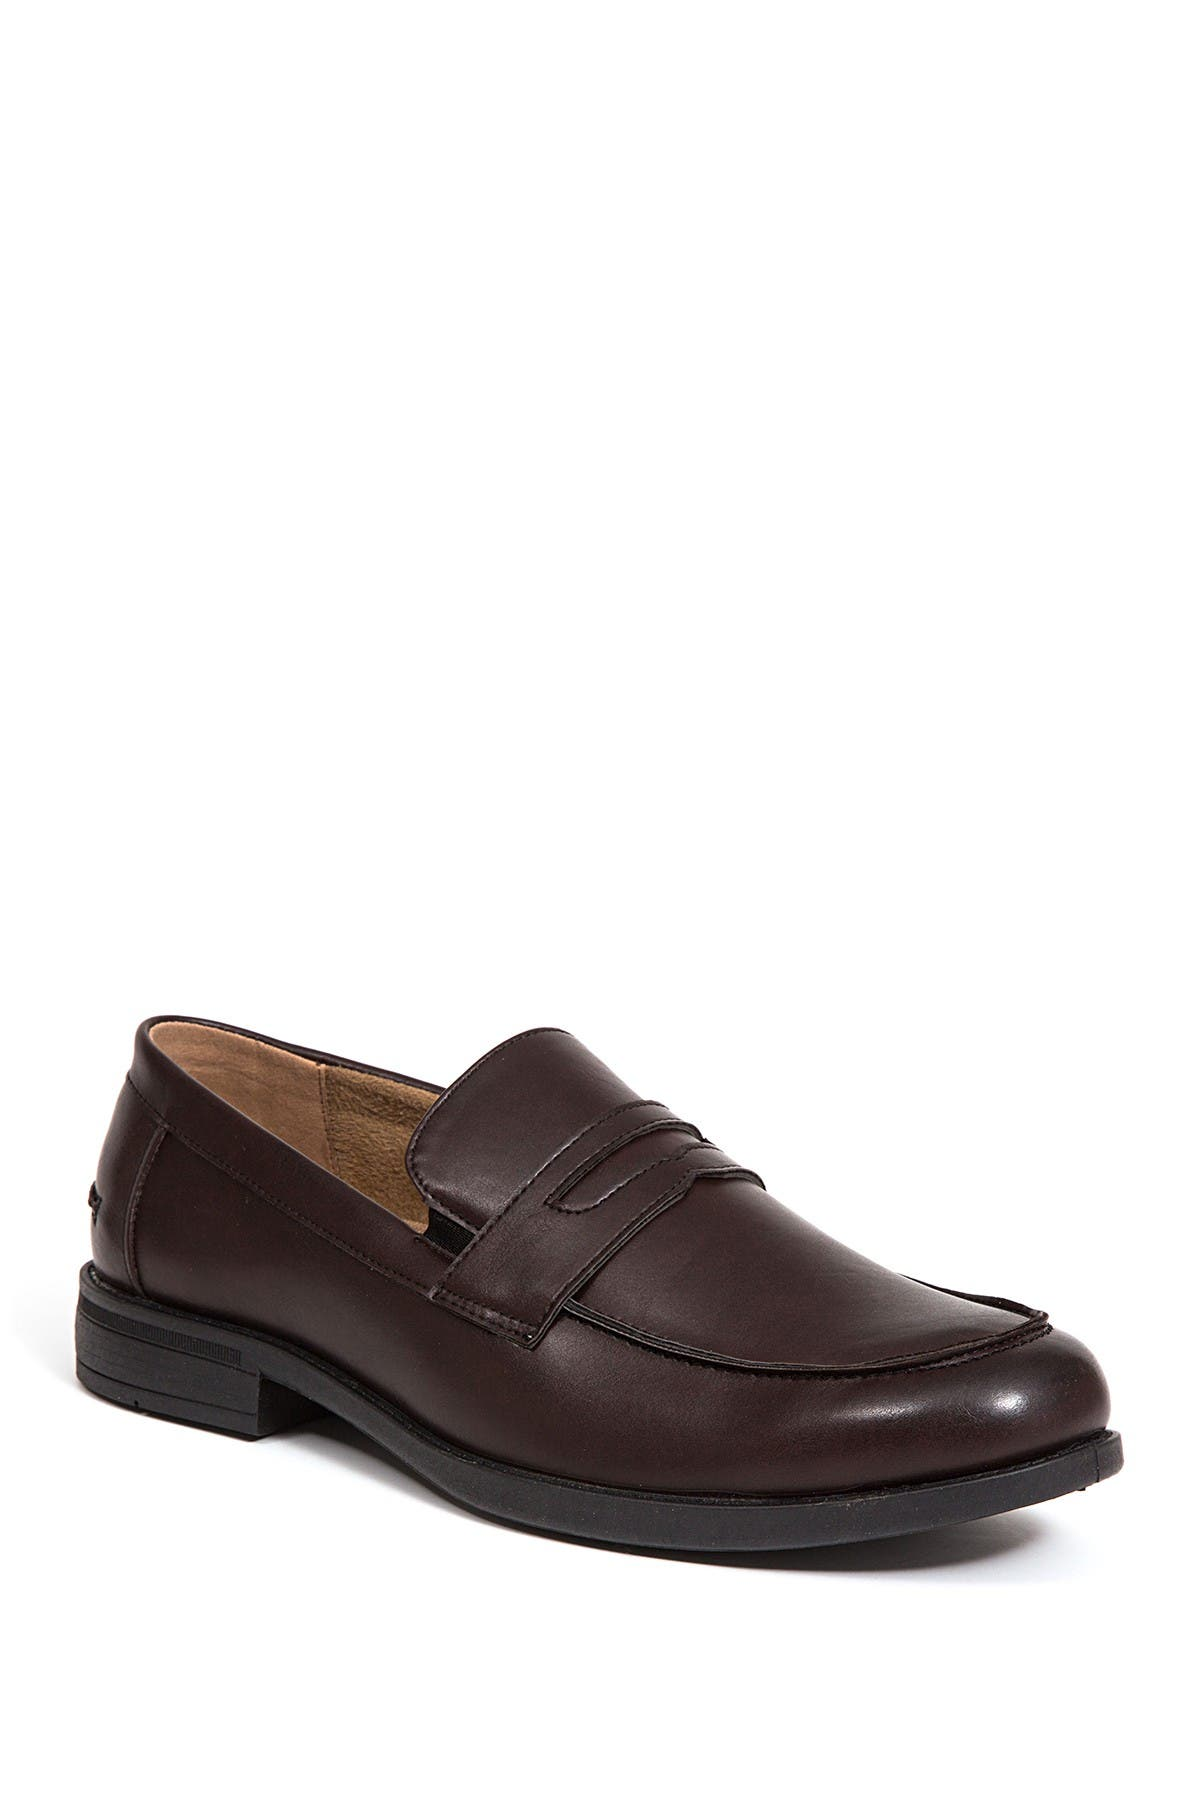 Image of Deer Stags Fund Faux Leather Penny Loafer - Wide Width Available